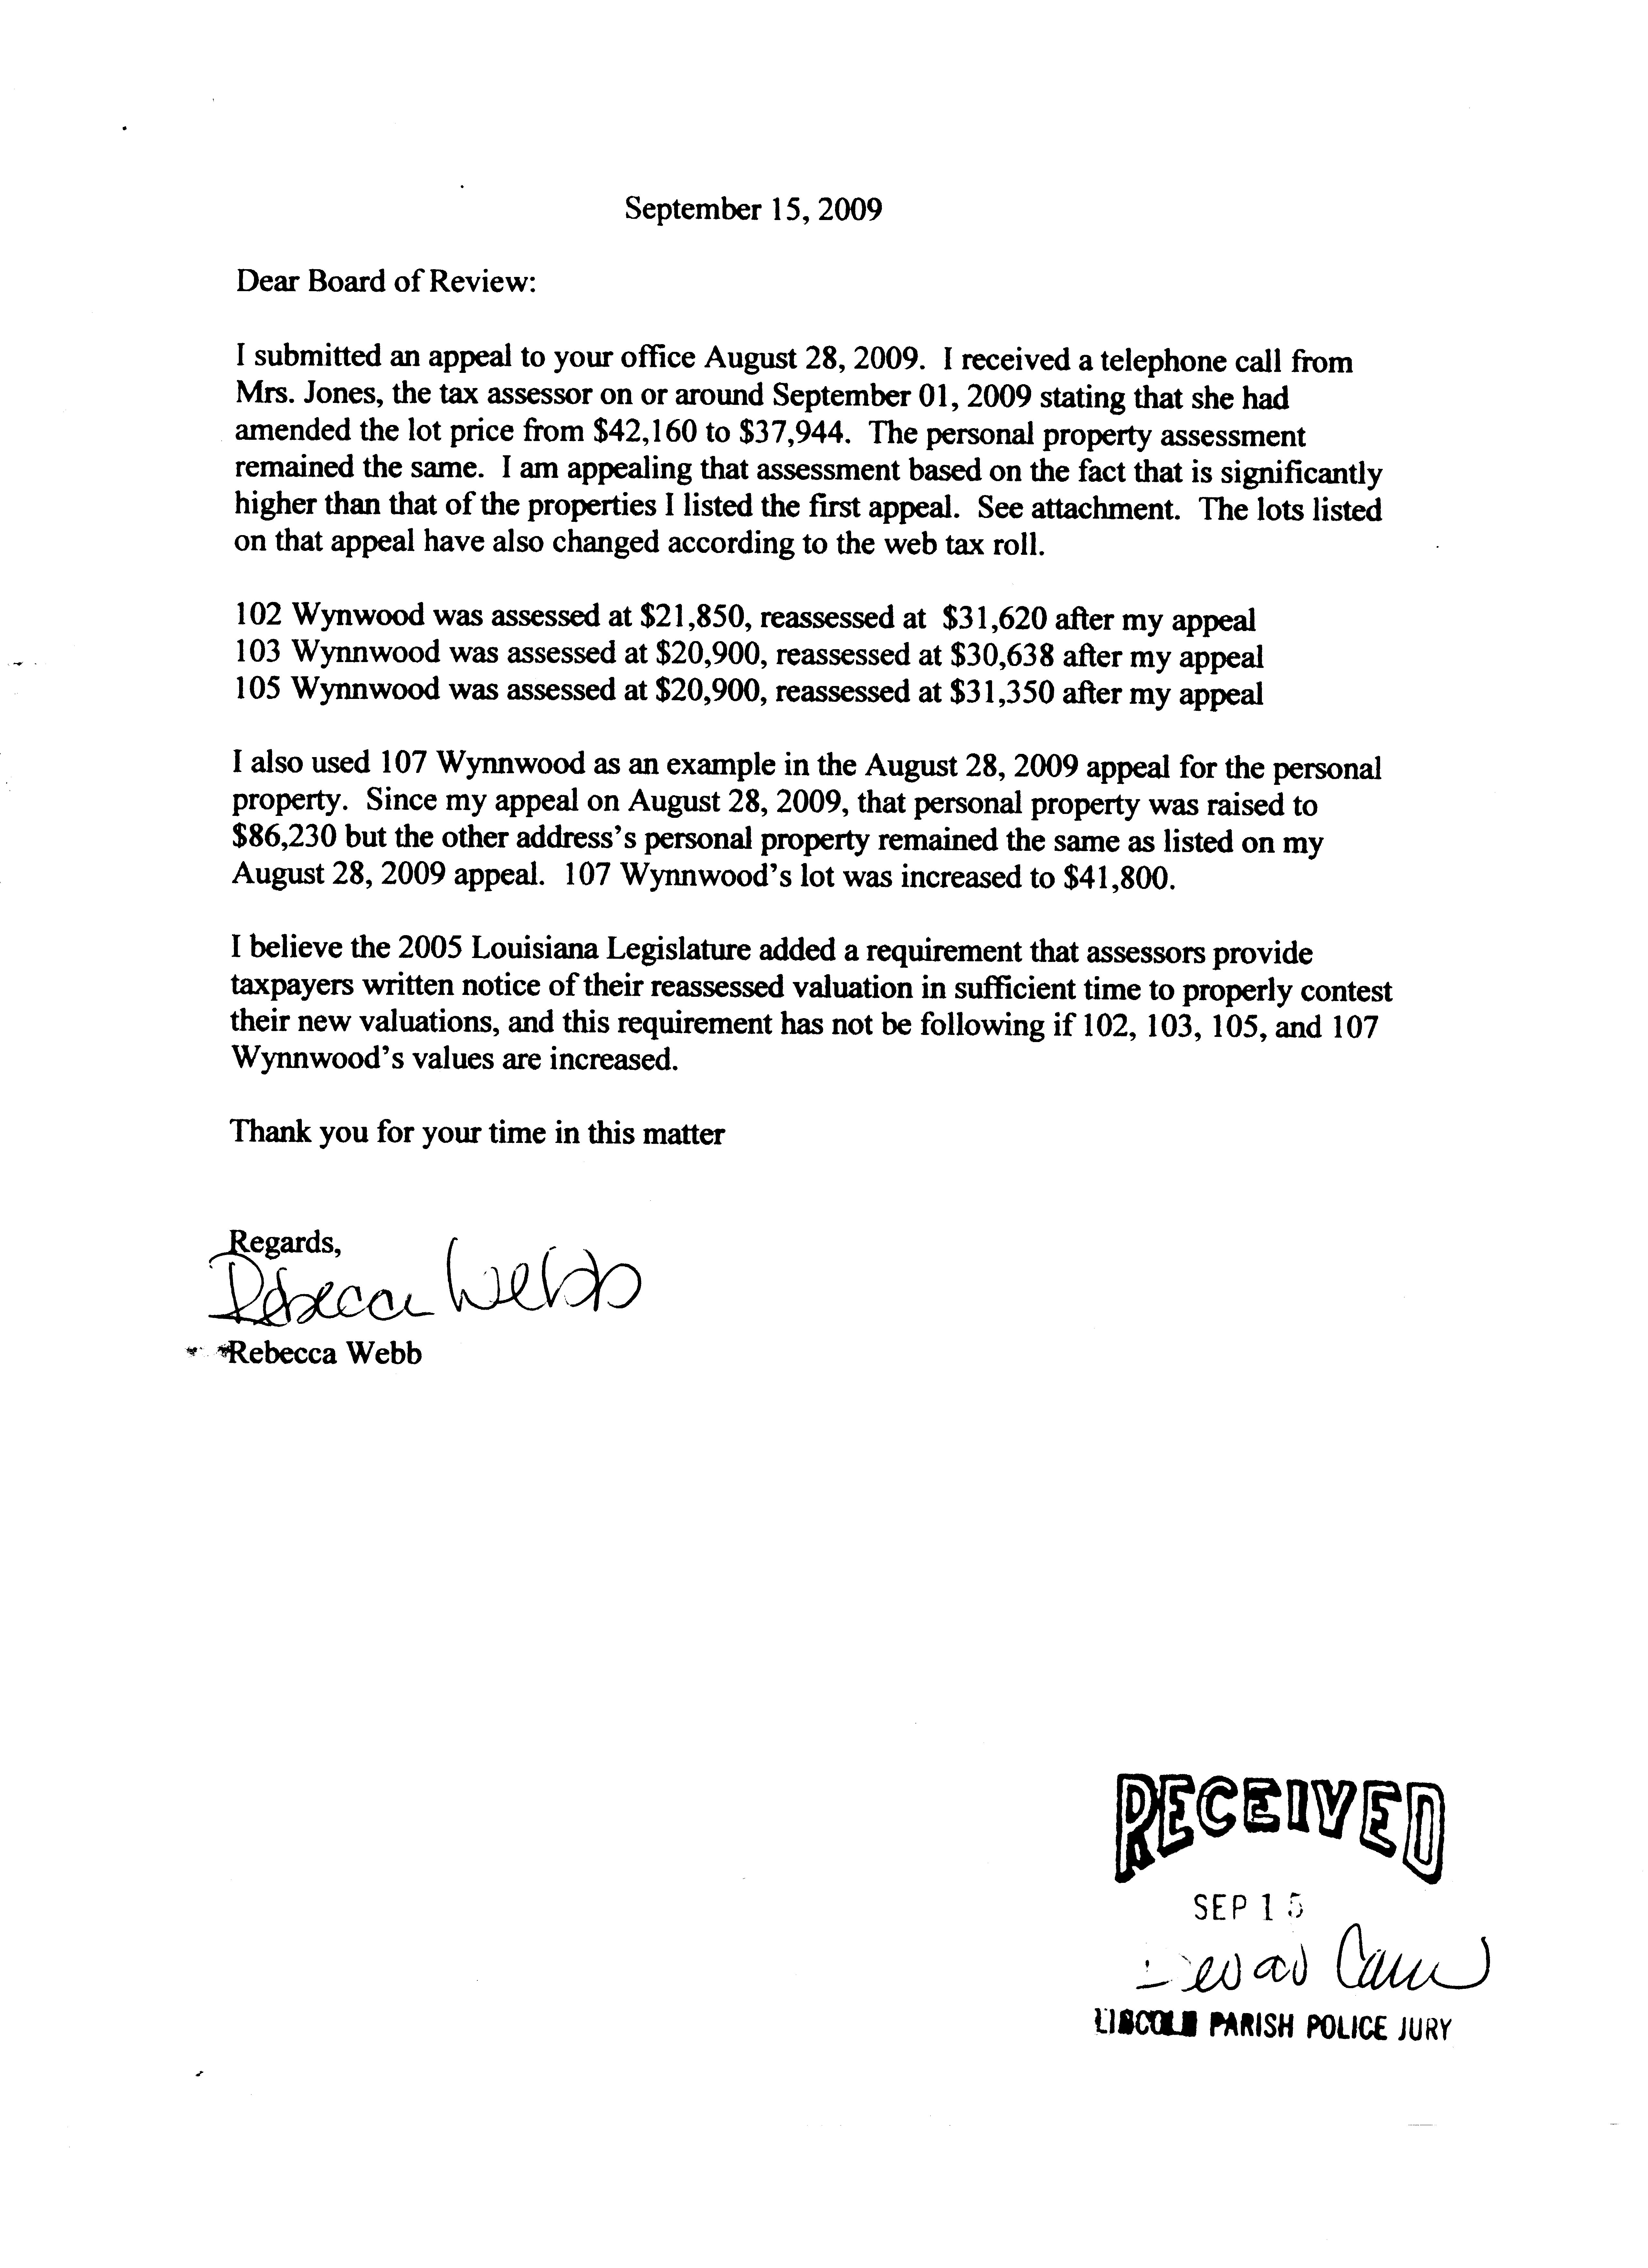 Tax Protest Letter Template - How to Write A Letter Appeal Sample Choice Image Letter format